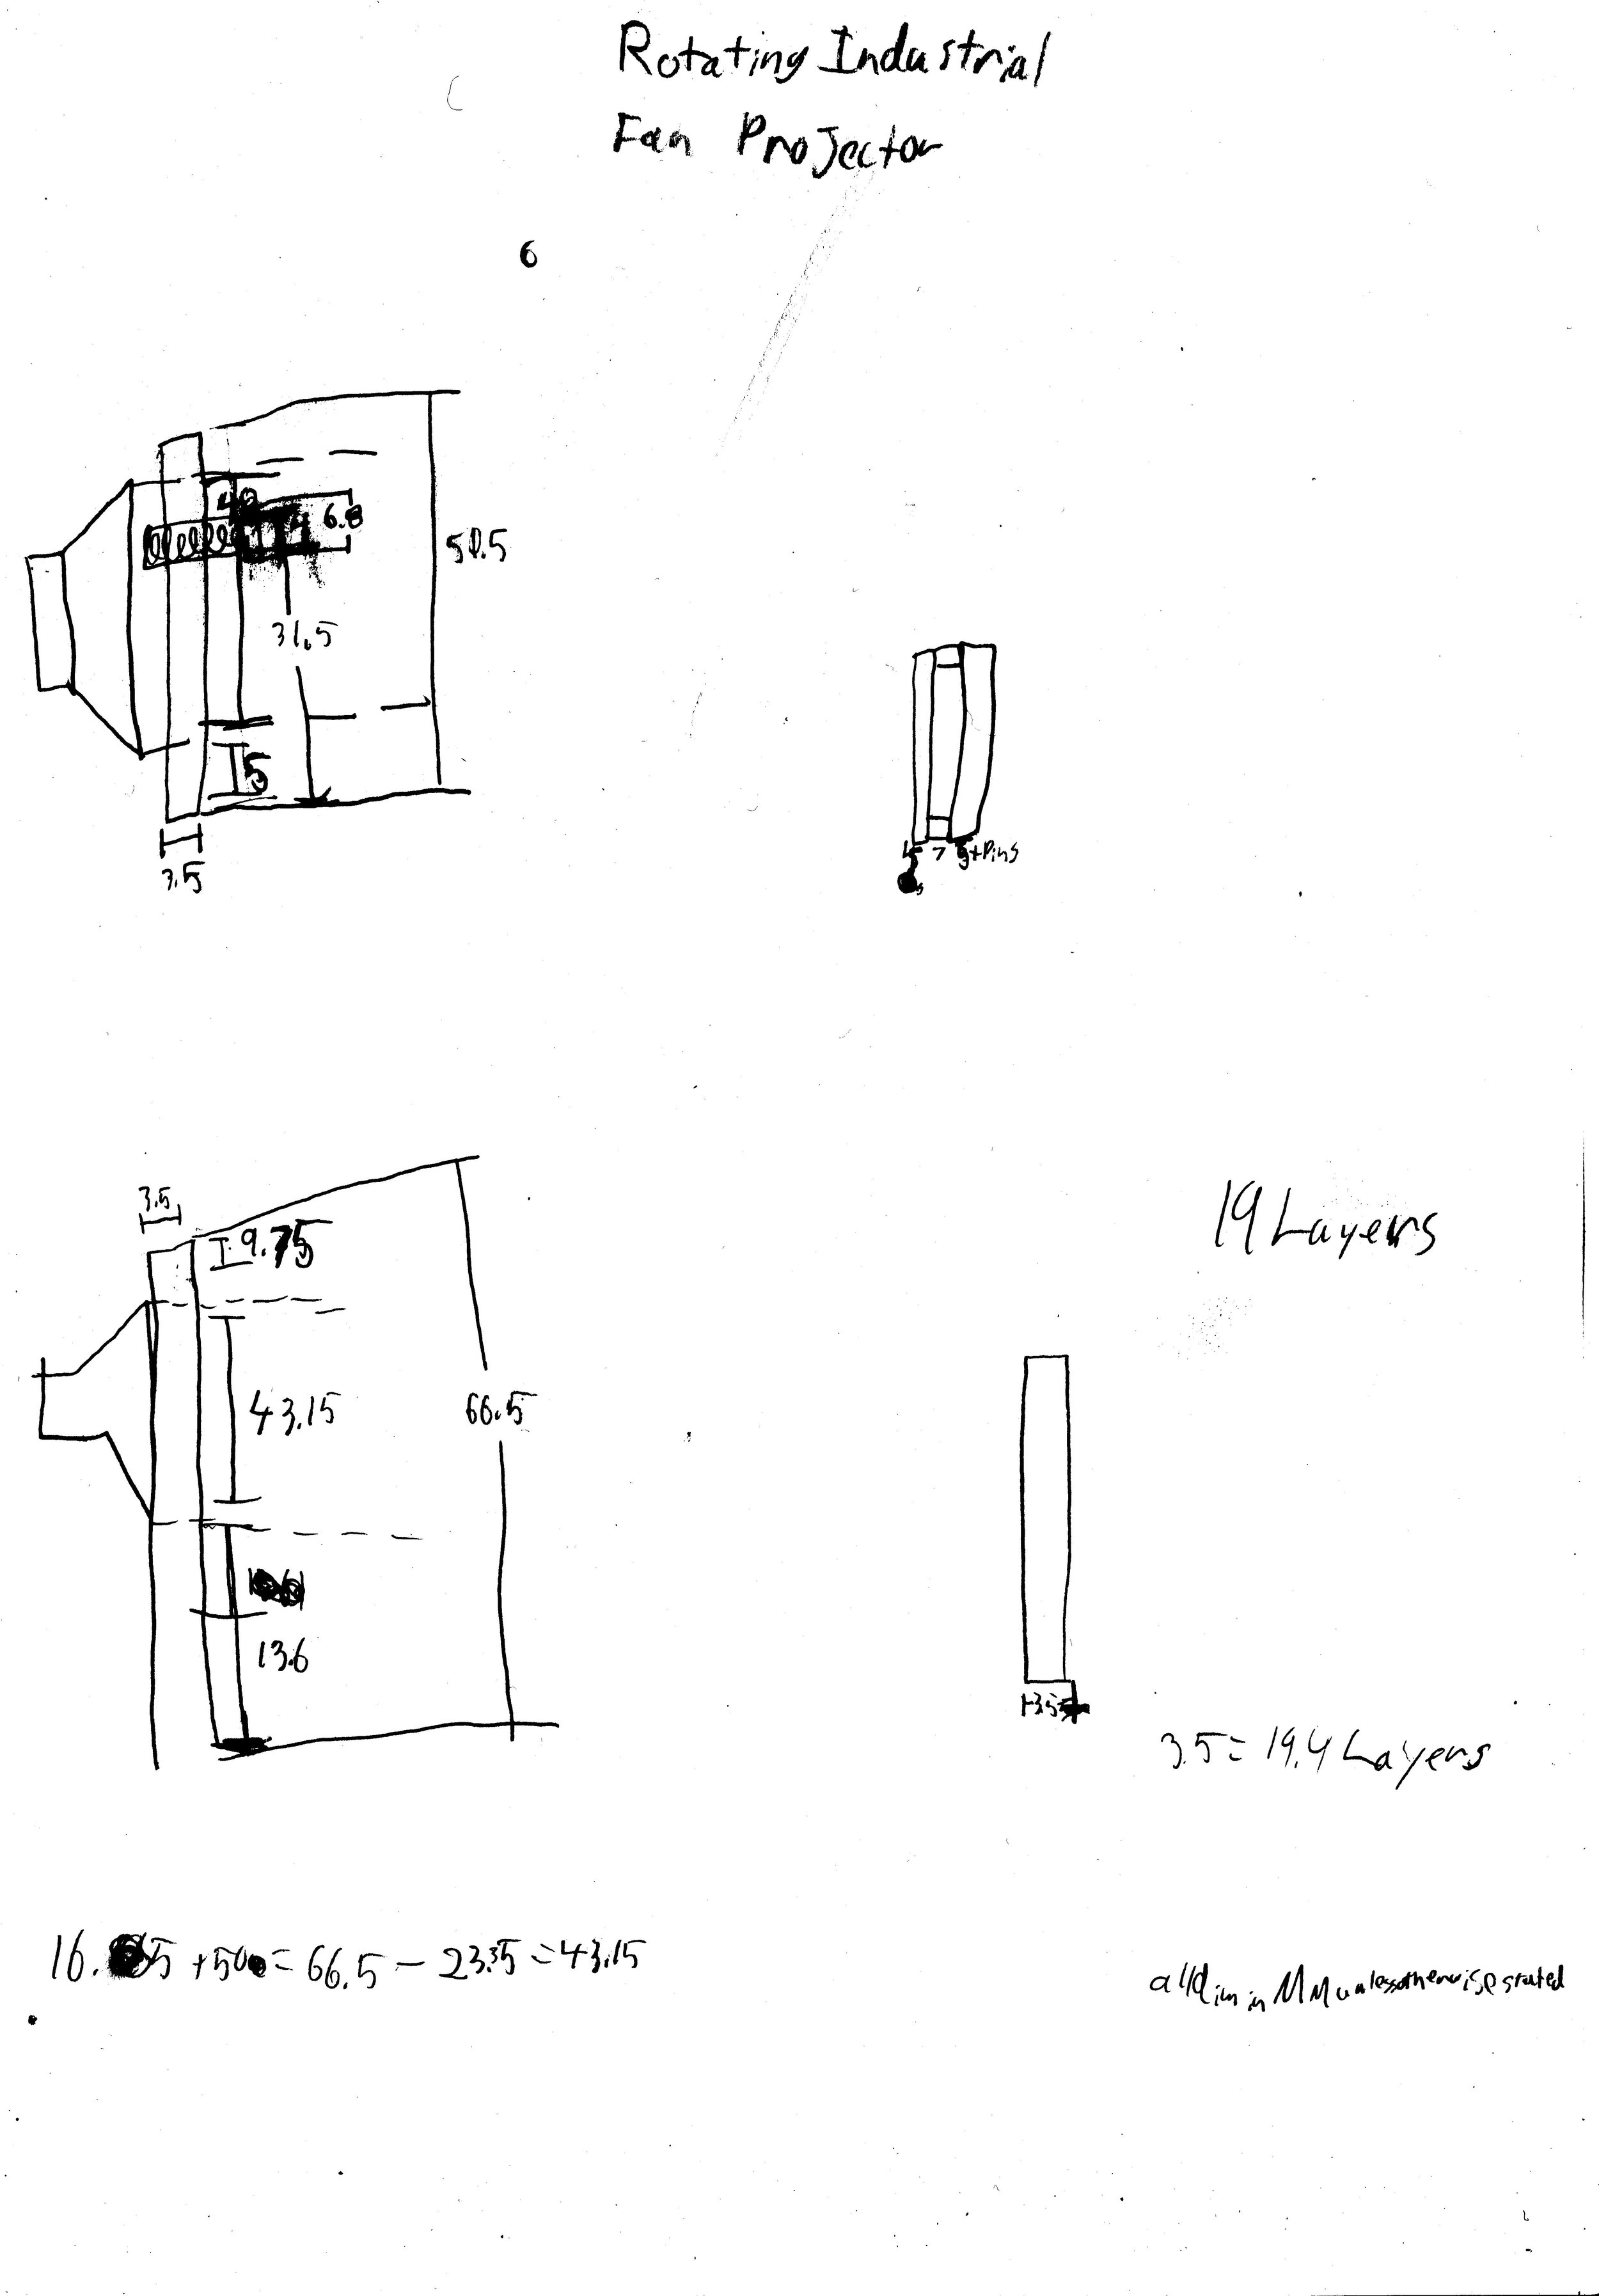 A sketch of the Rotating Industrial Fan Projector Prop for Juice.